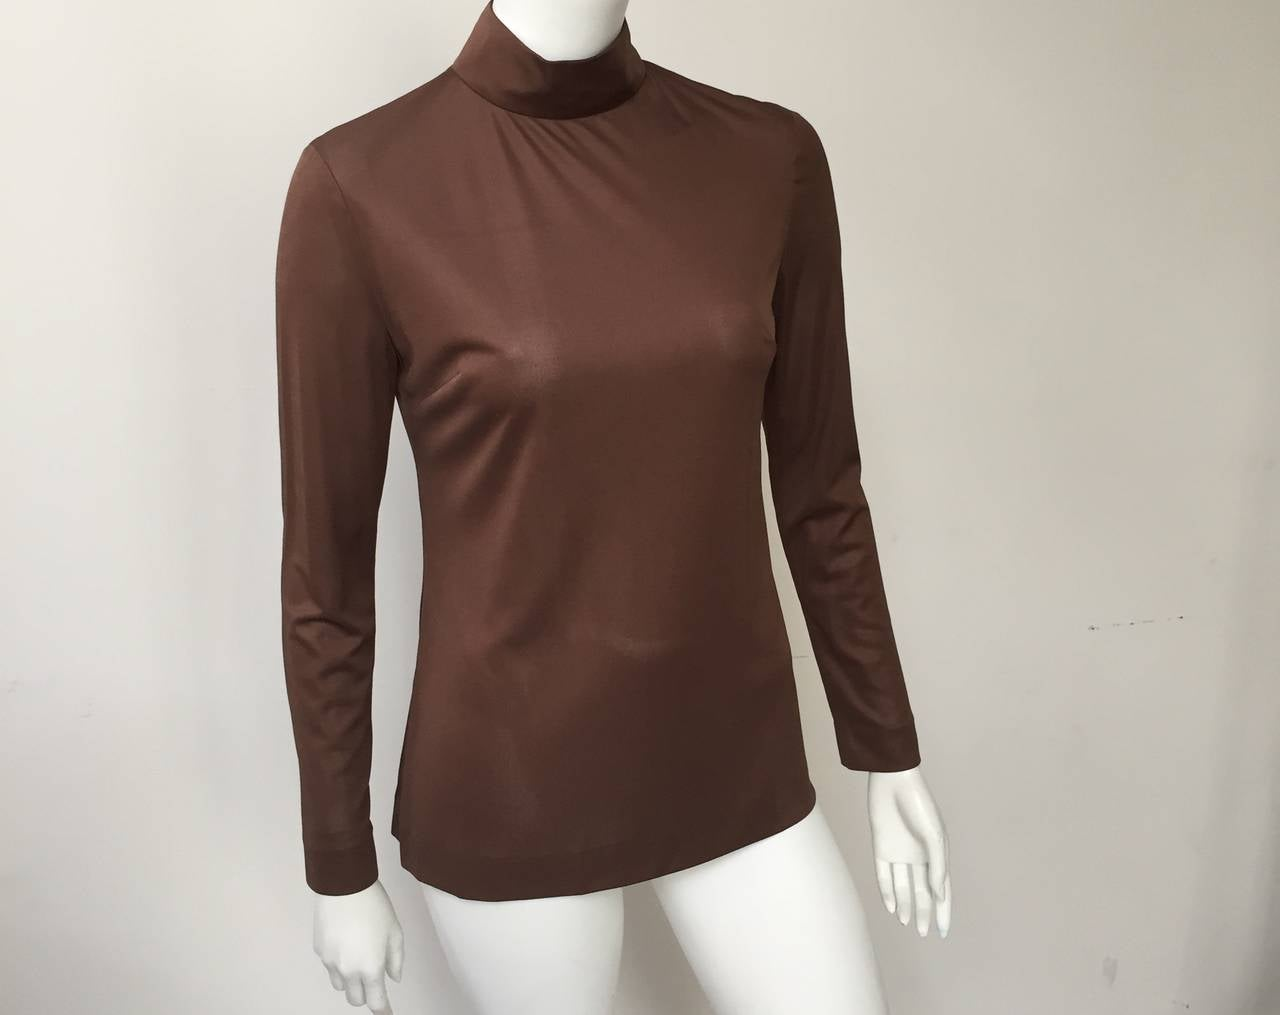 Emilio Pucci 70s Silk Brown Blouse Size 6. 4